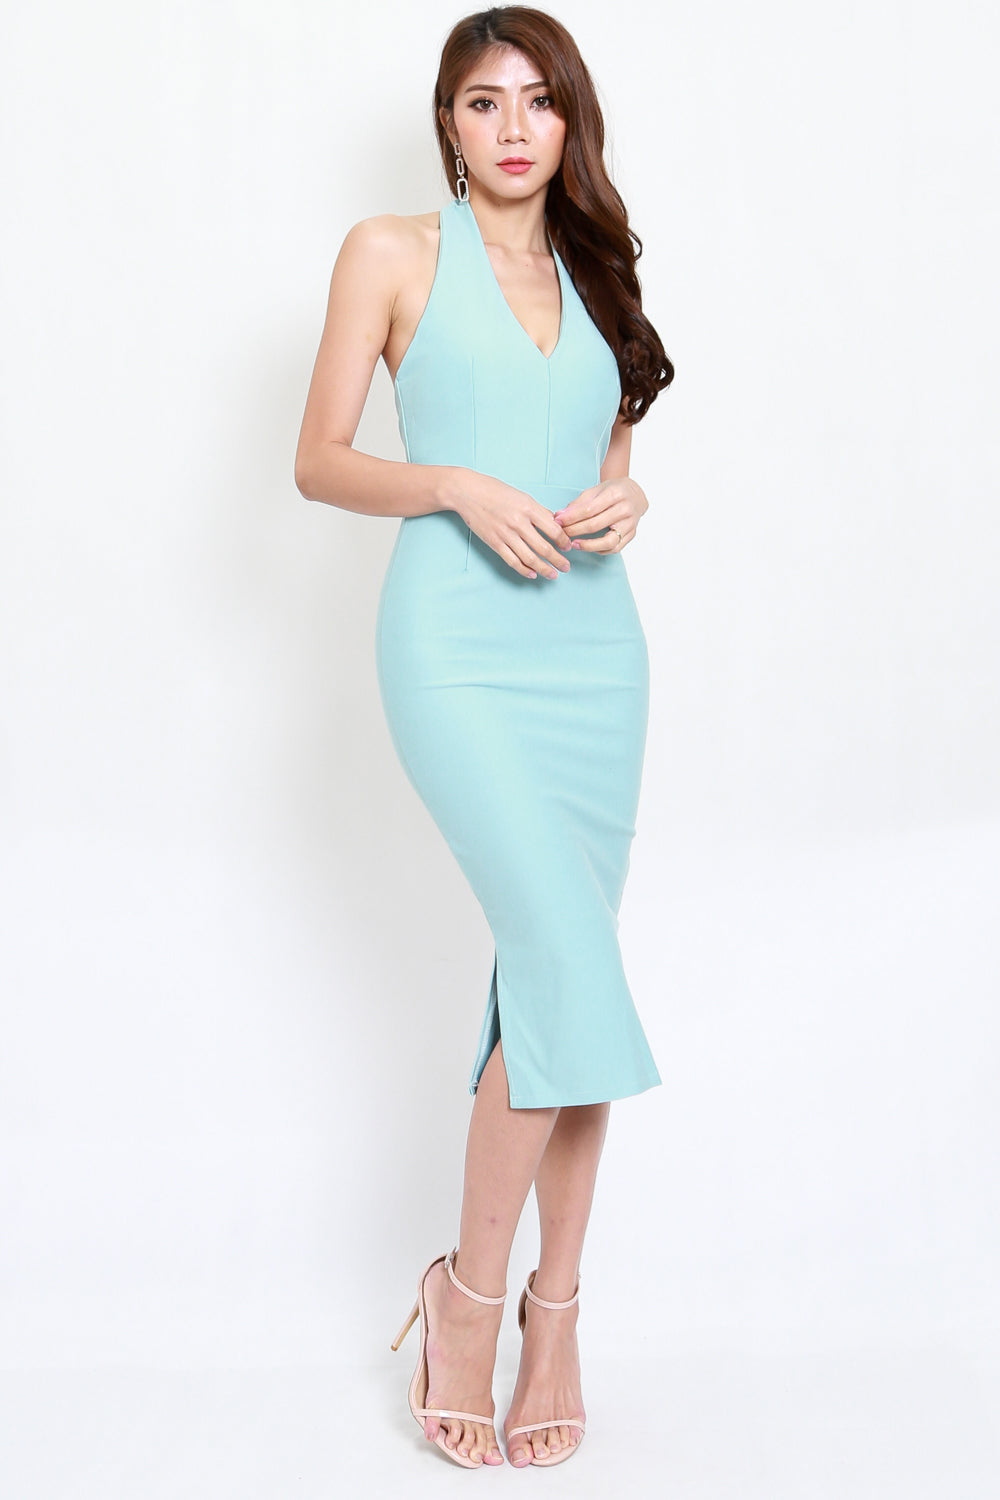 *Premium* Low Back Halter Dress (Tiffany Blue)